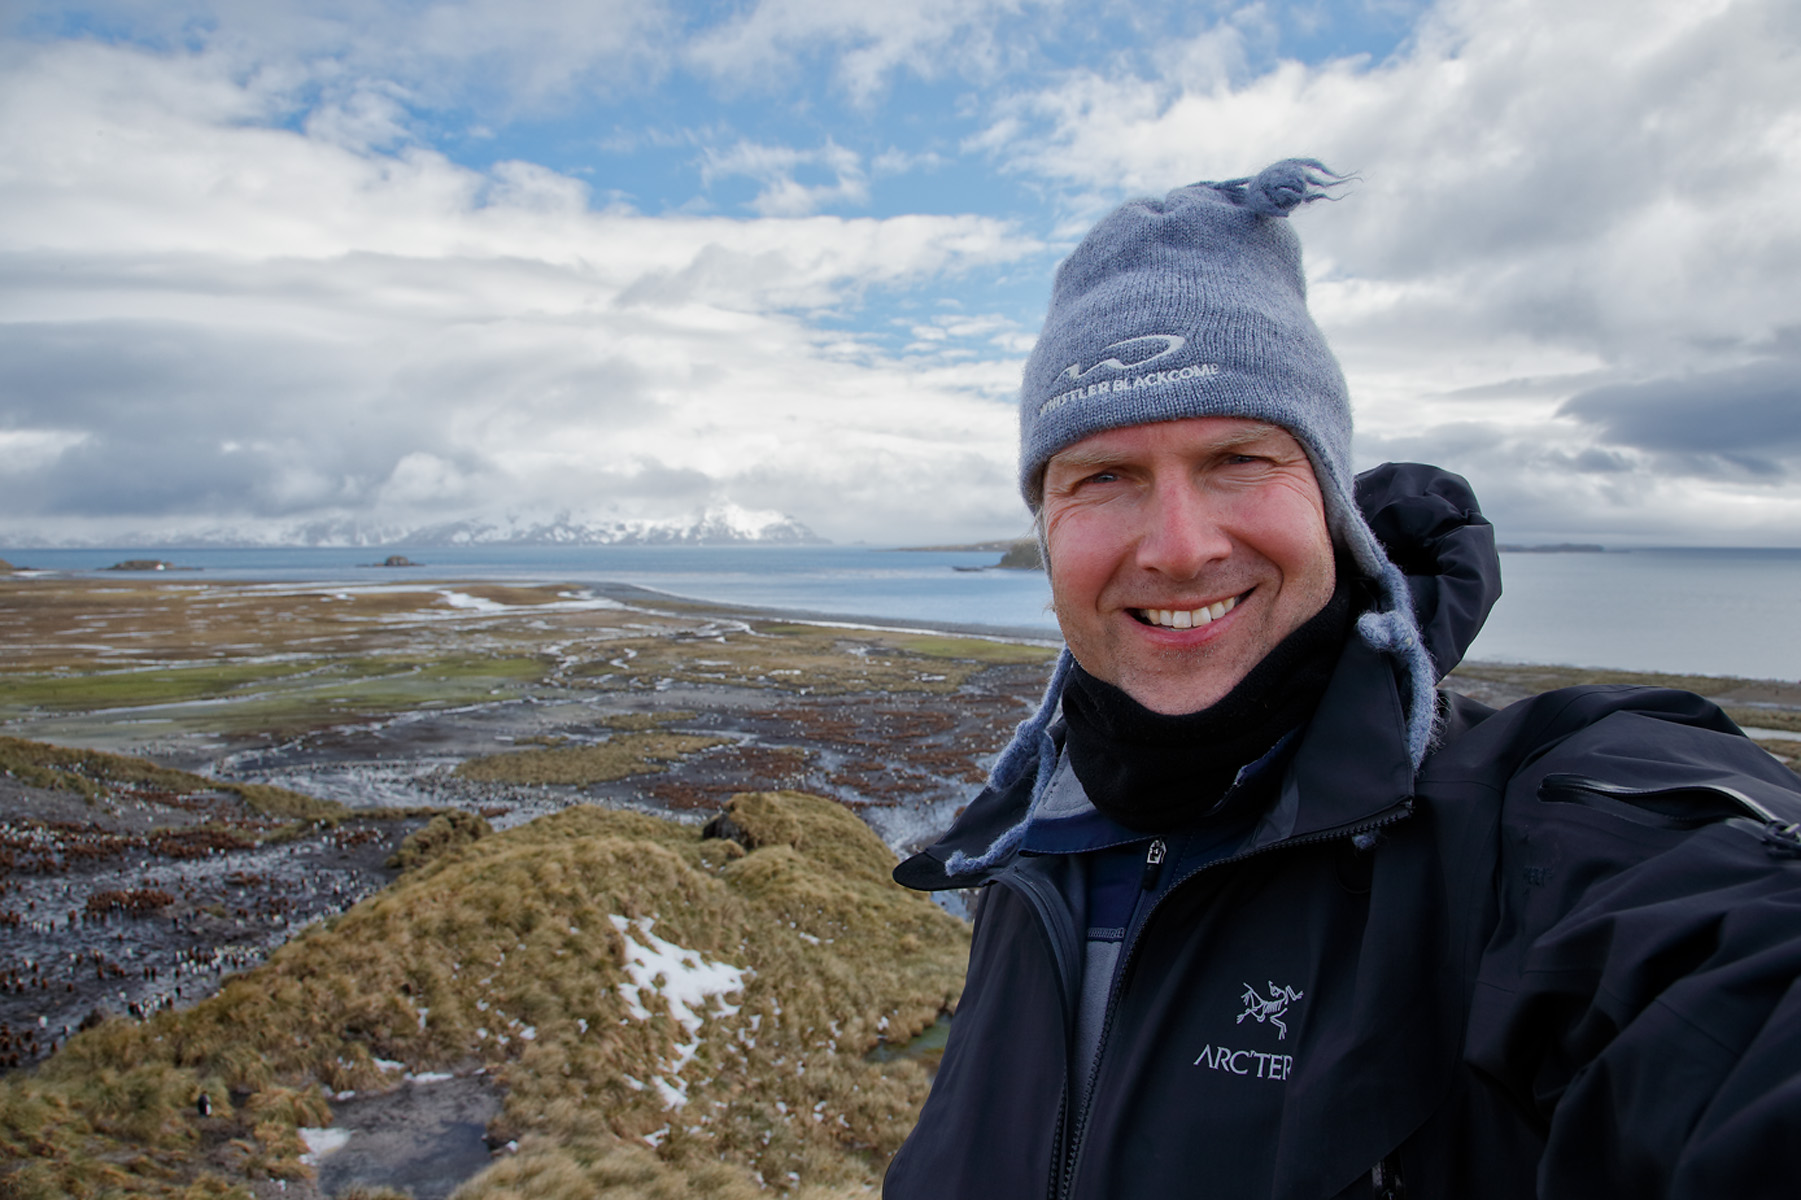 Clemens Selfie at Salisbury_E7T3601-Salisbury Plain, Bay of Isles, South Georgia Islands, Southern ocean.jpg